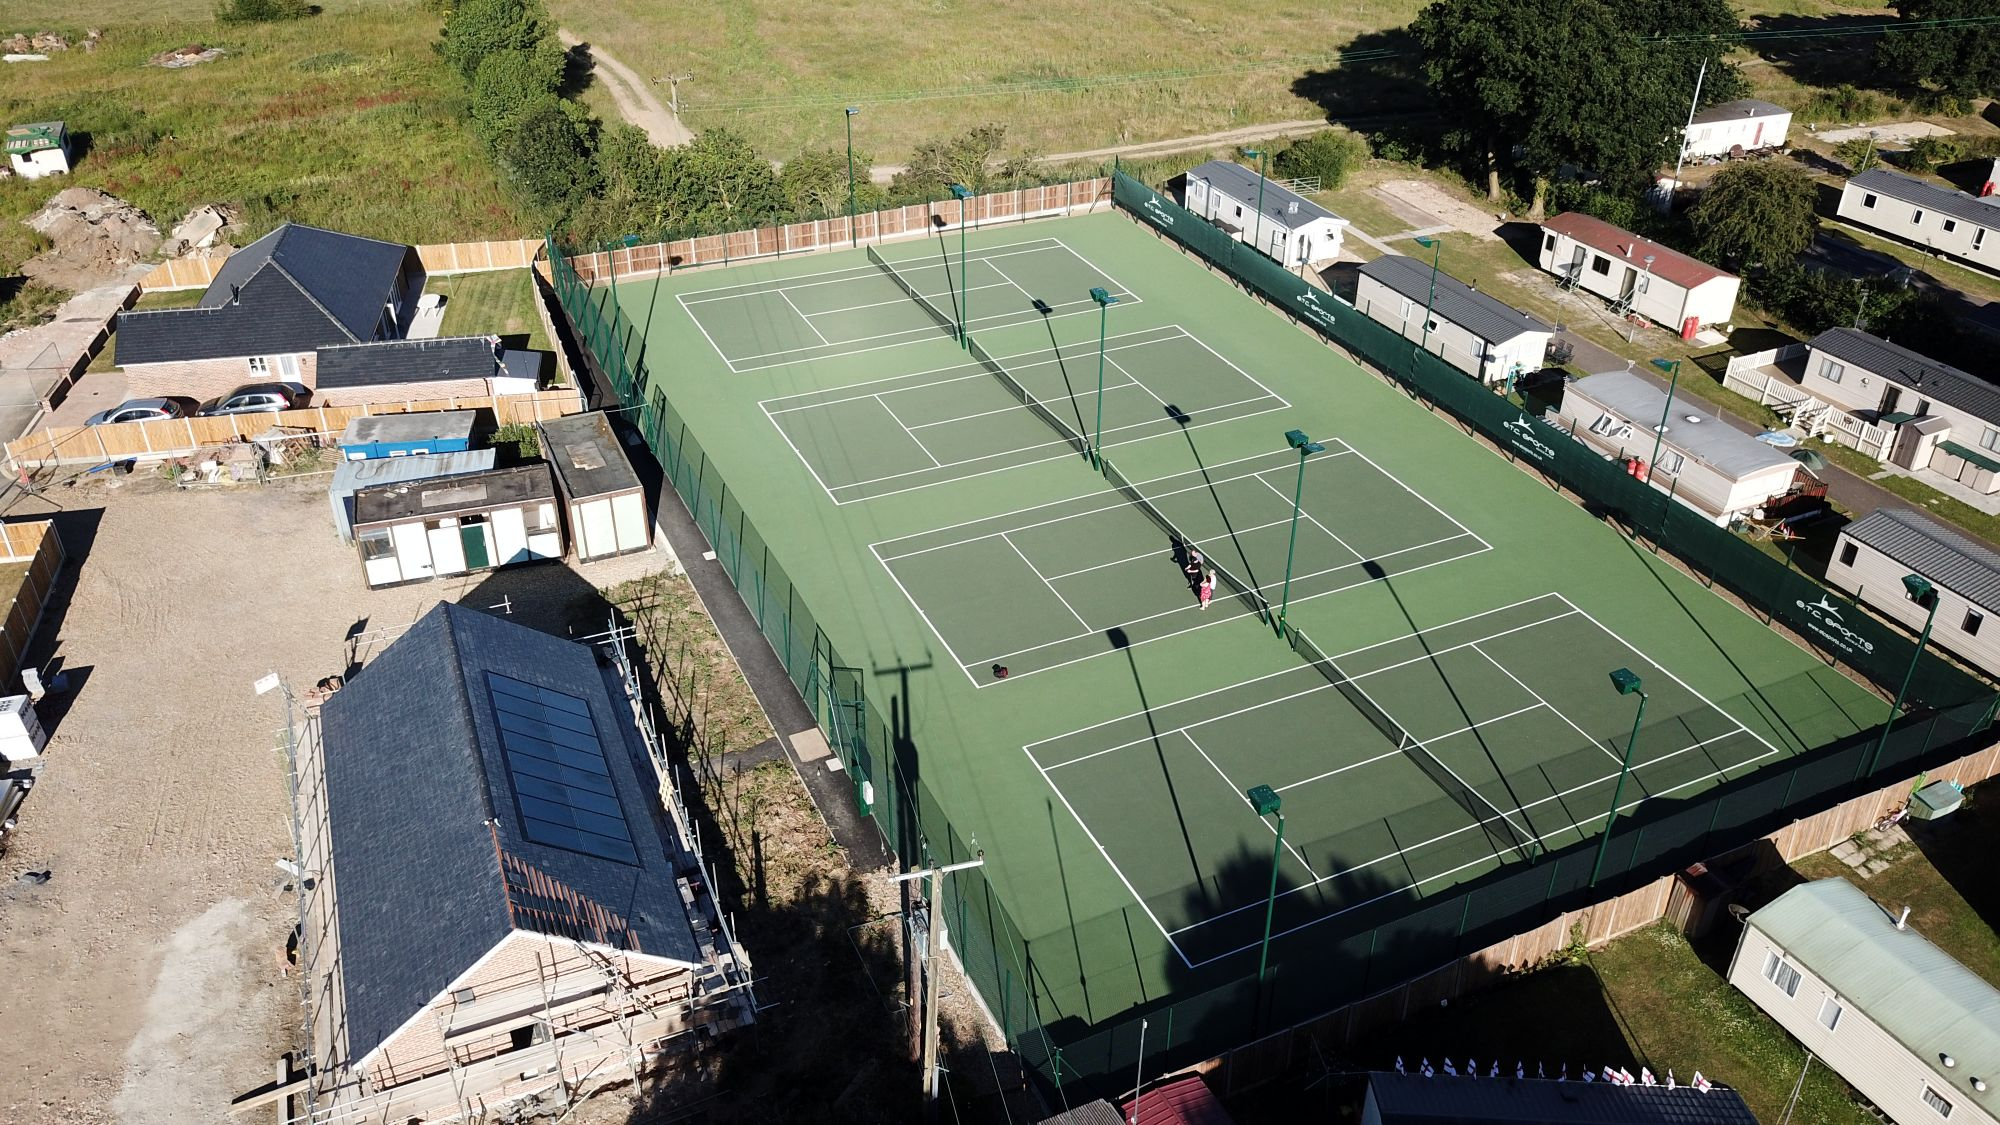 Many of our customers choose asphalt tennis surfaces thanks to their high performance and easy tennis court maintenance